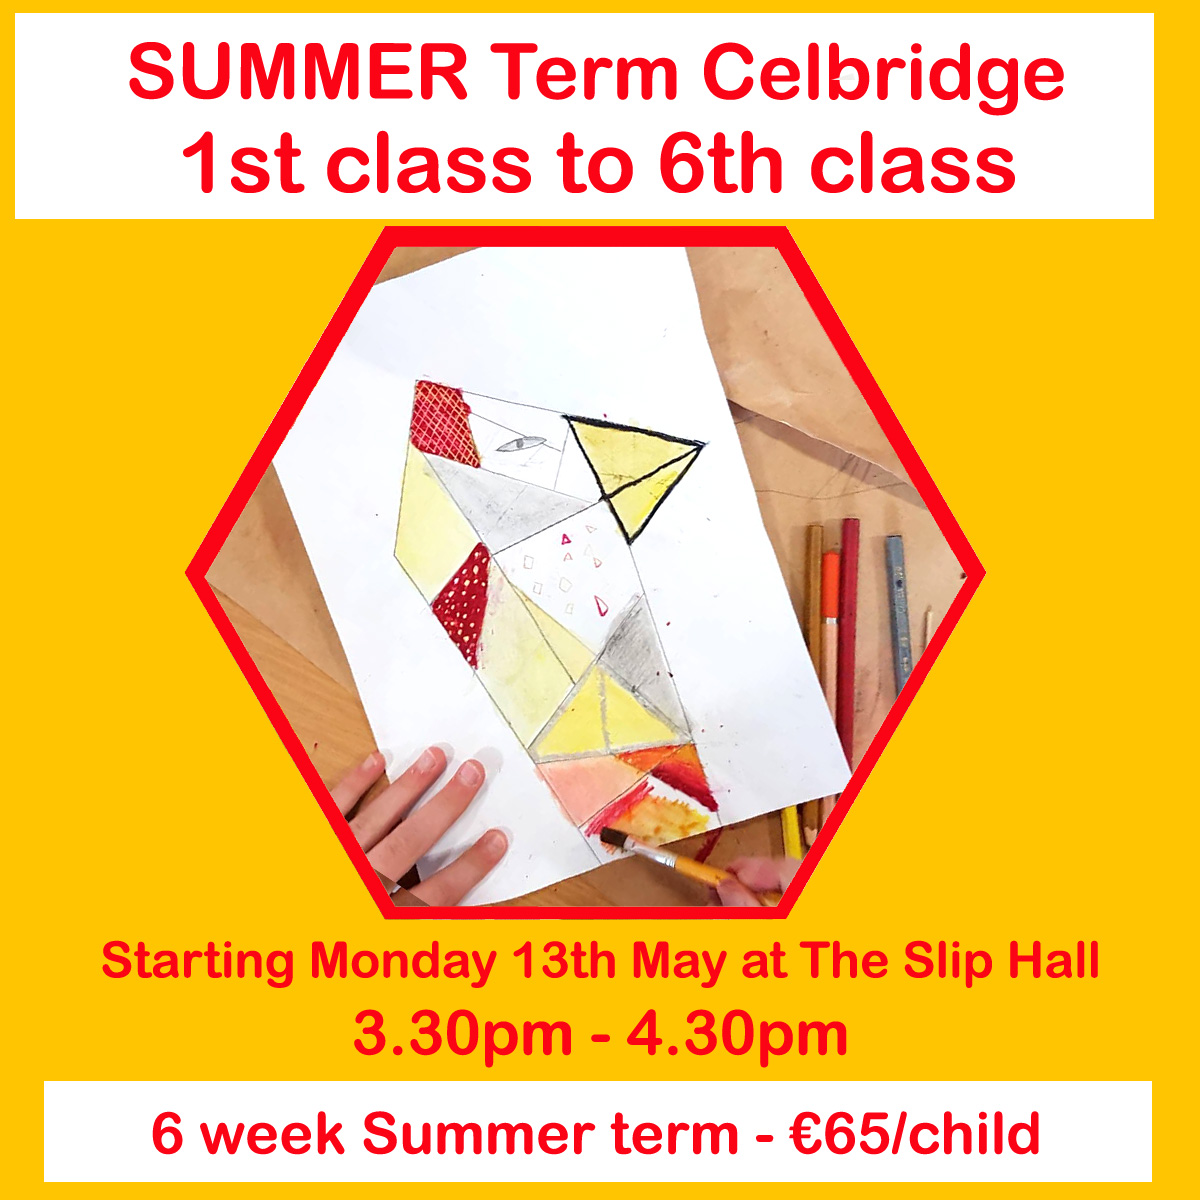 summer term of art classes for 1st class upwards 2019